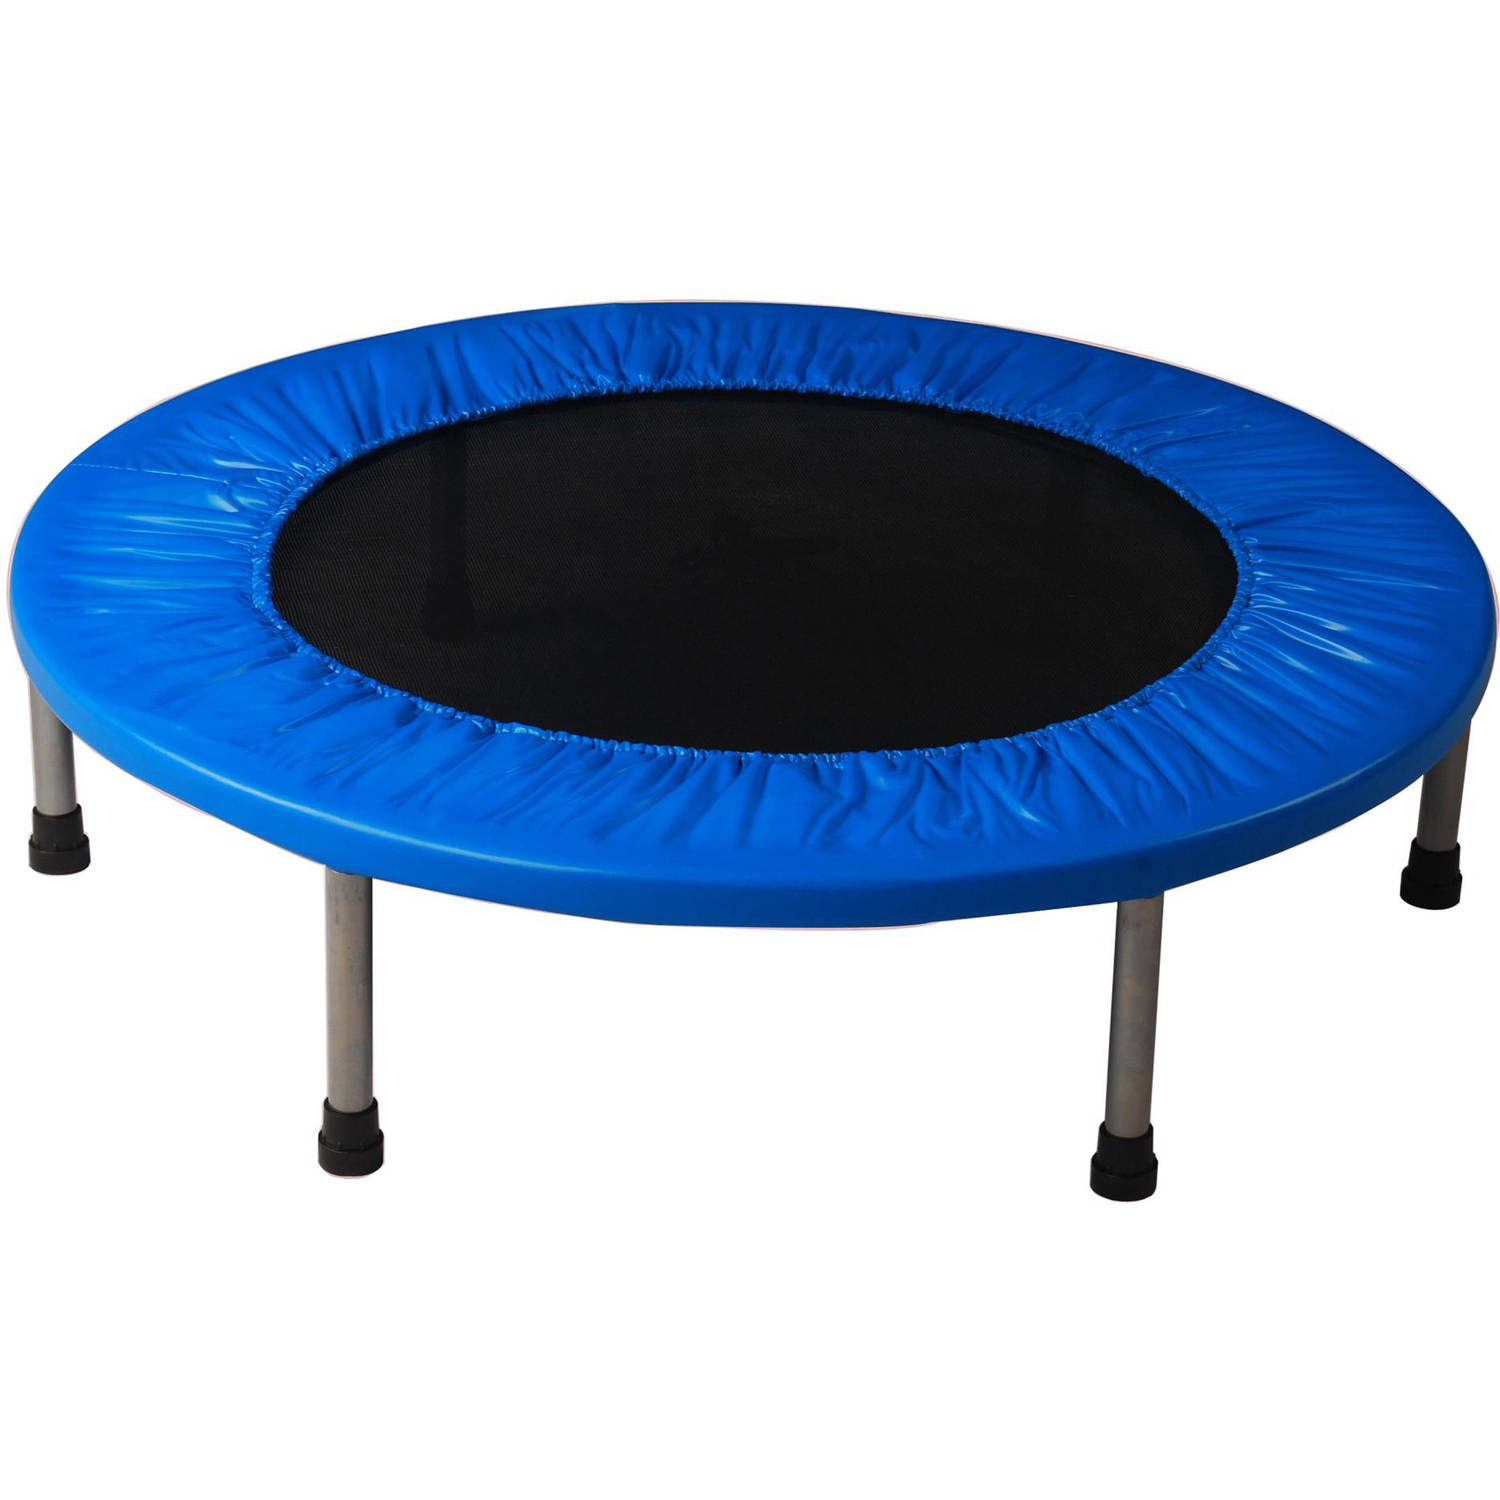 "Airzone 48"" Fitness Trampoline, Blue"